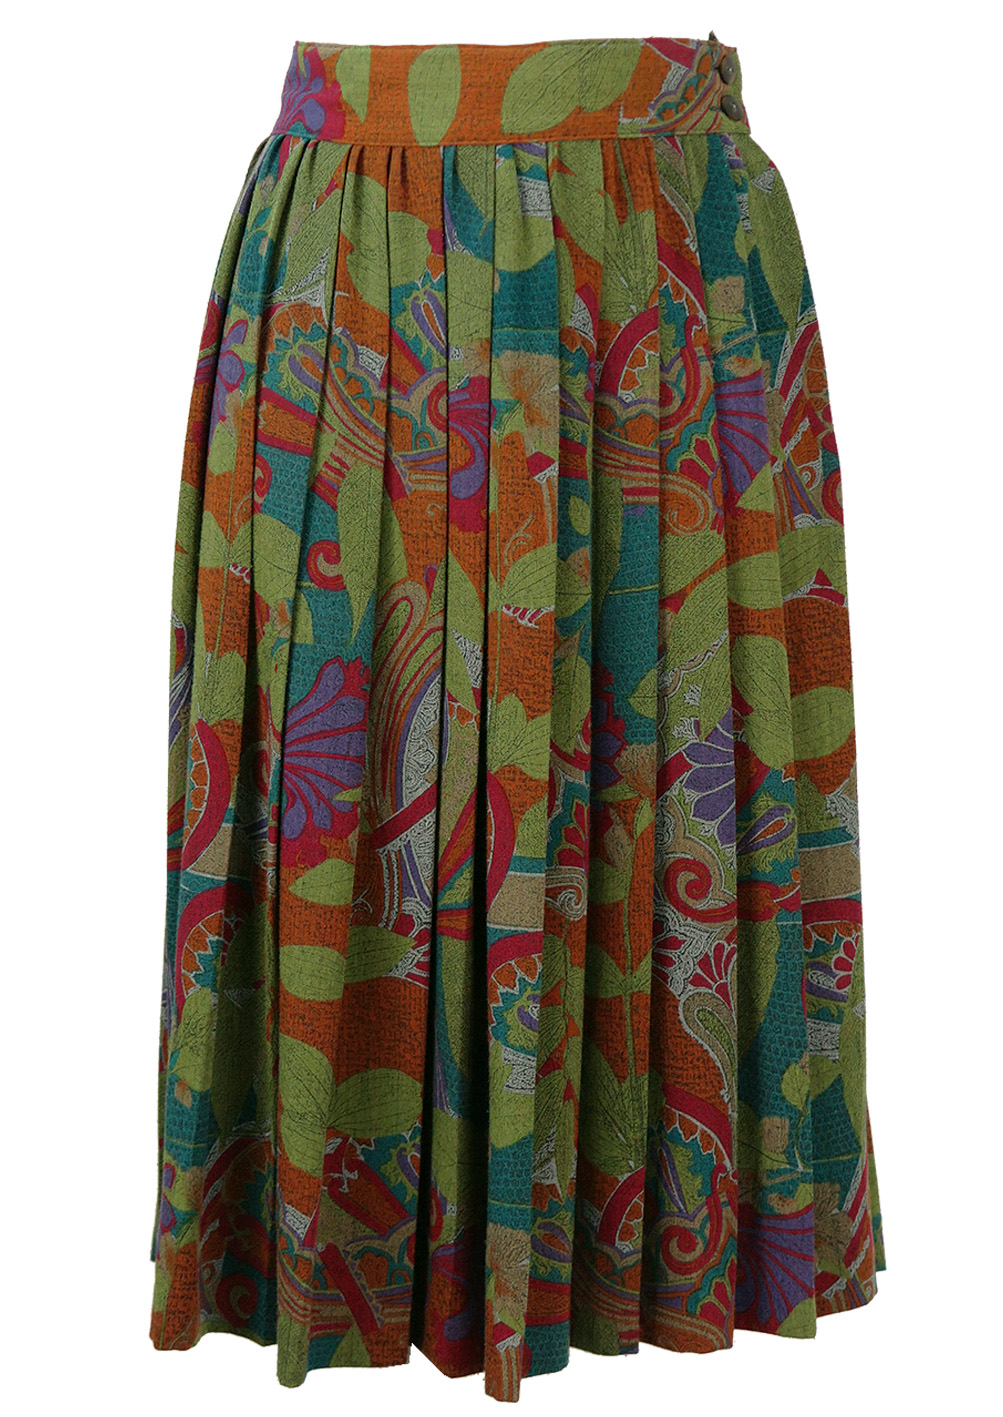 Midi Pleated Skirt with Abstract Floral Pattern – S/M ...